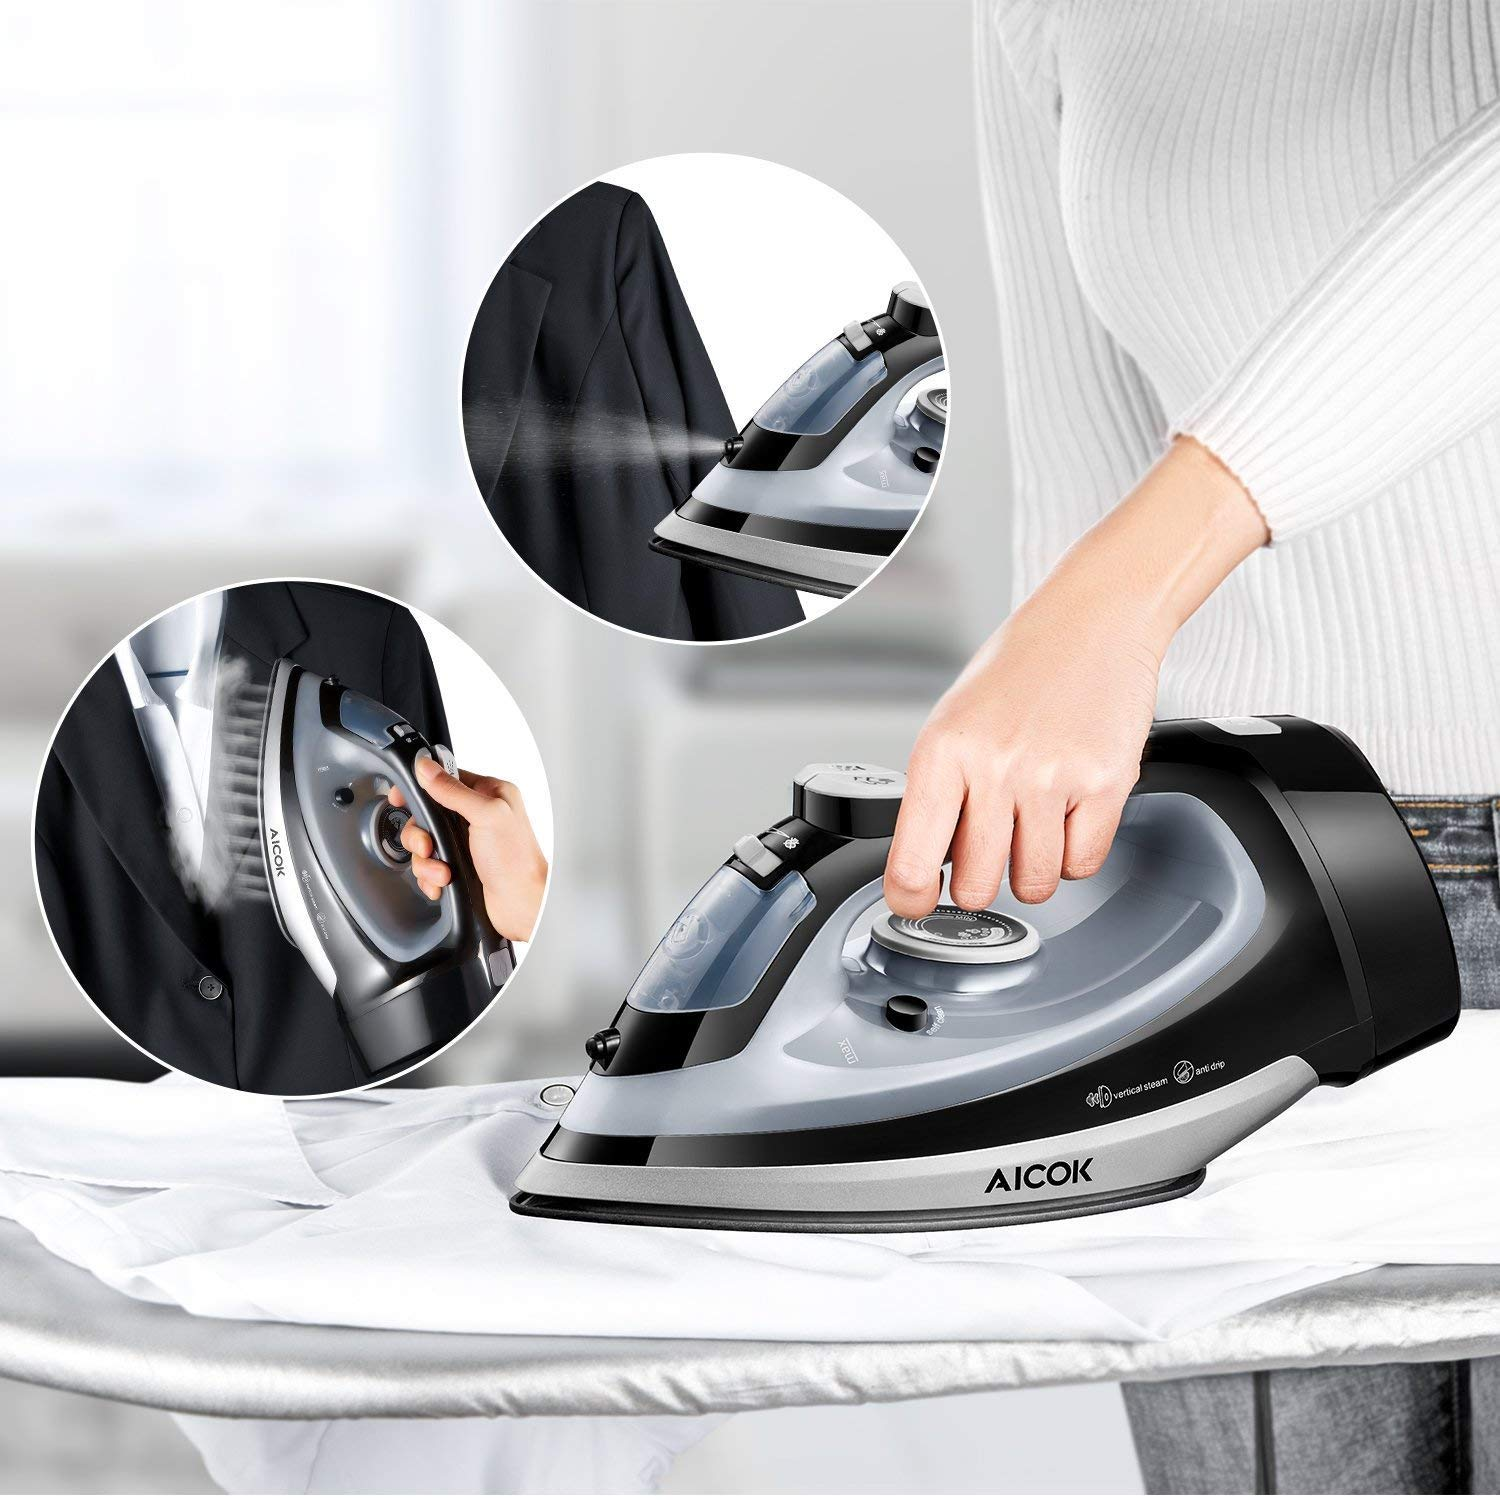 AICOK Steam Iron features